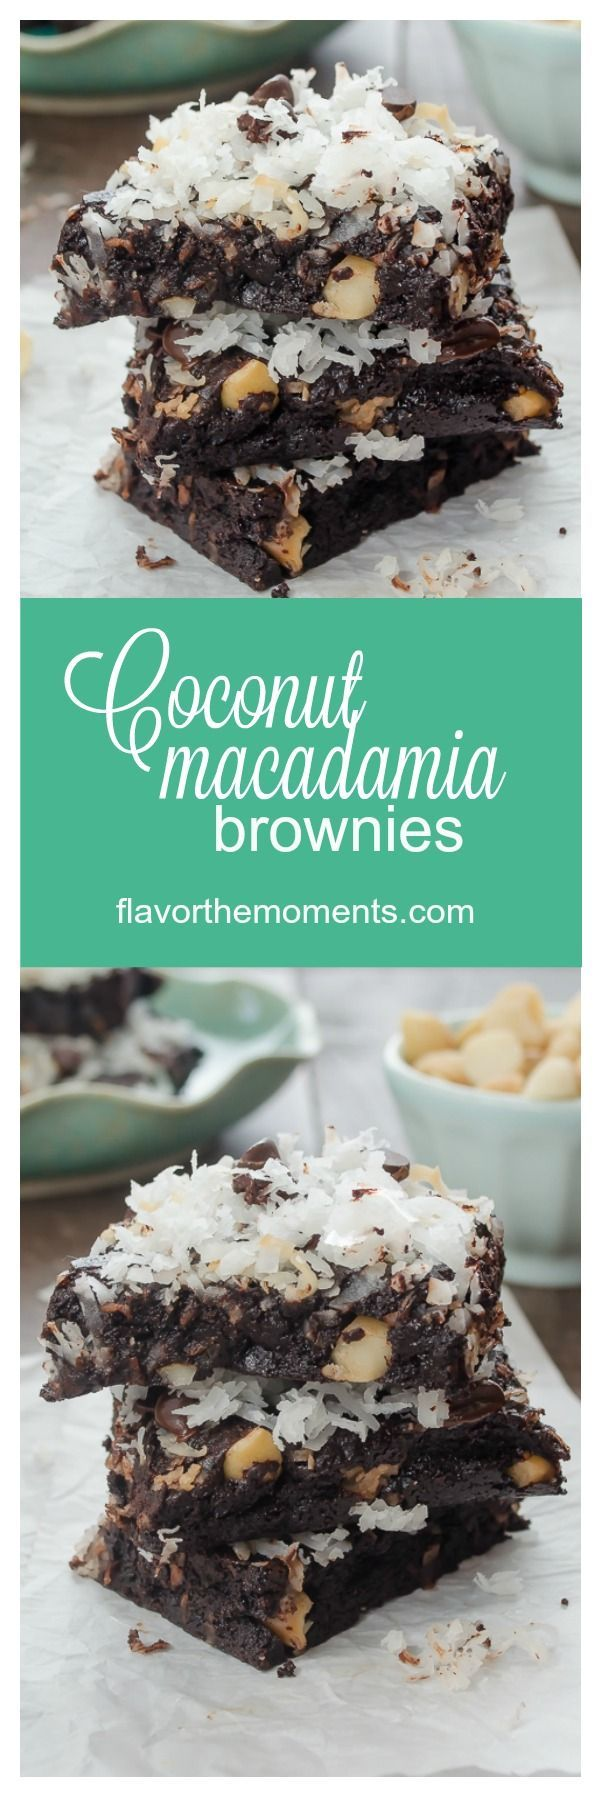 Coconut Macadamia Brownies are the easiest, chewiest cocoa brownies ever with plenty of coconut, macadamia nuts, and coconut oil instead of butter! @FlavortheMoment